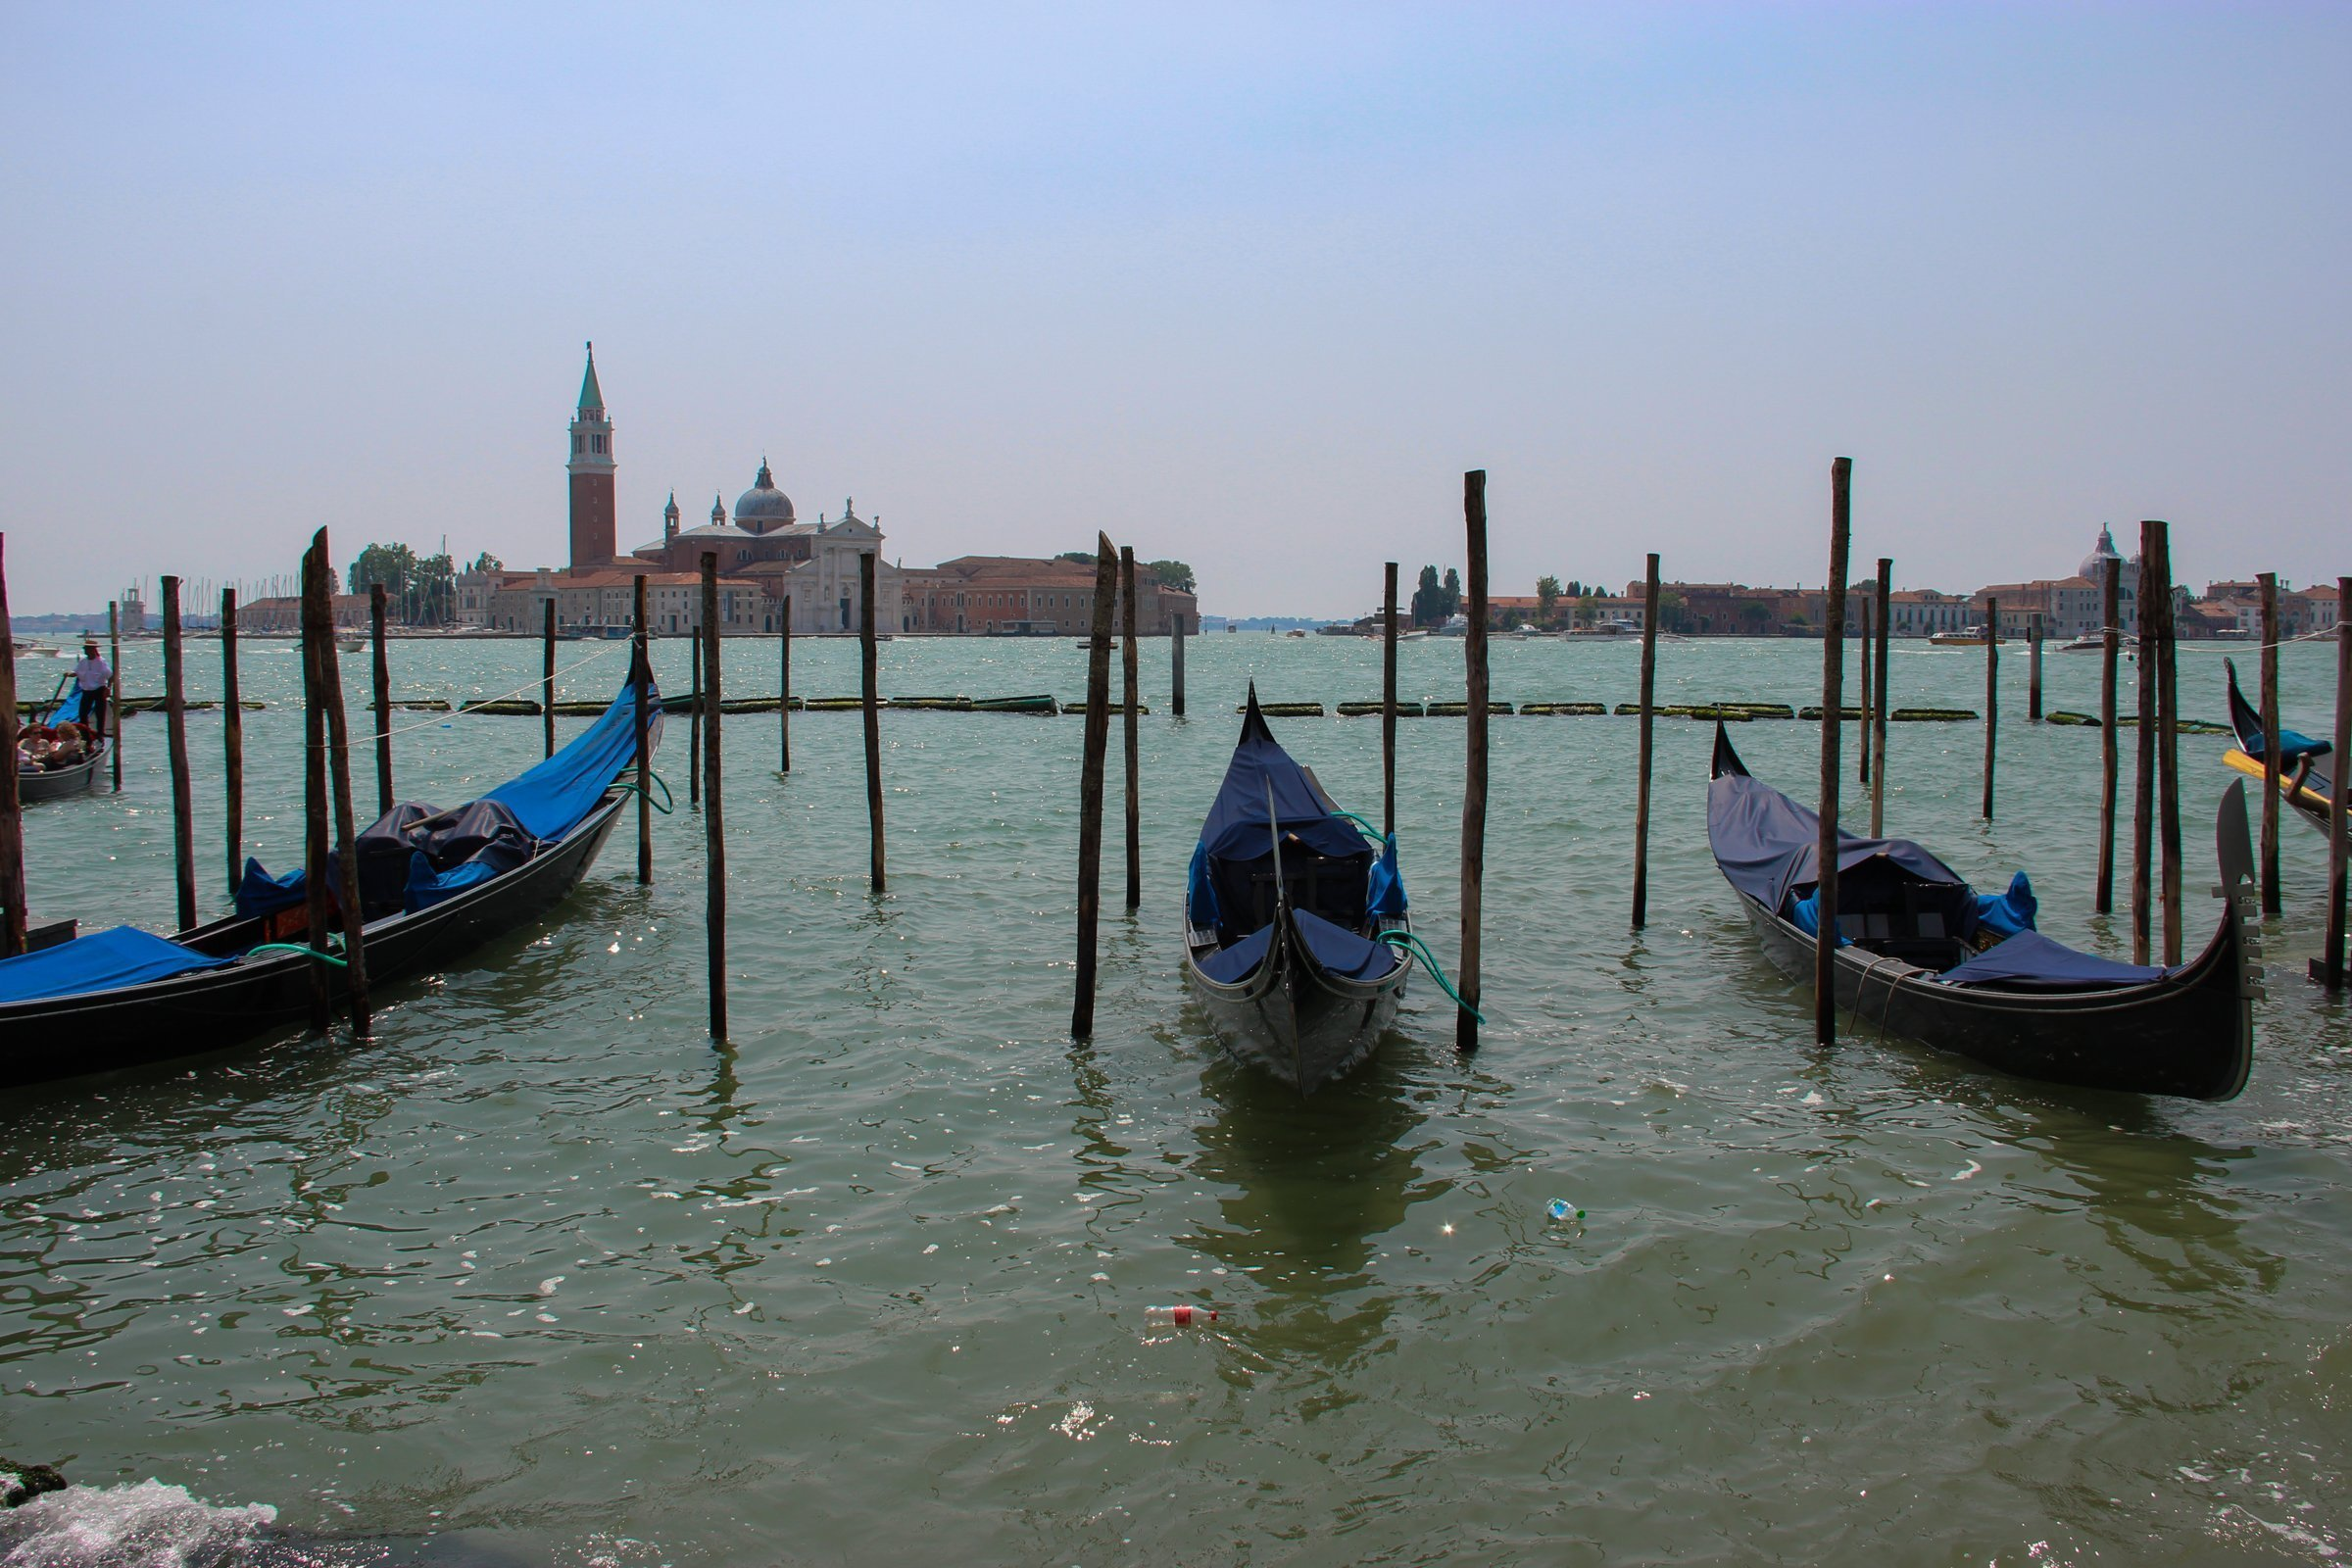 Gondolas Parked Between Wooden Poles